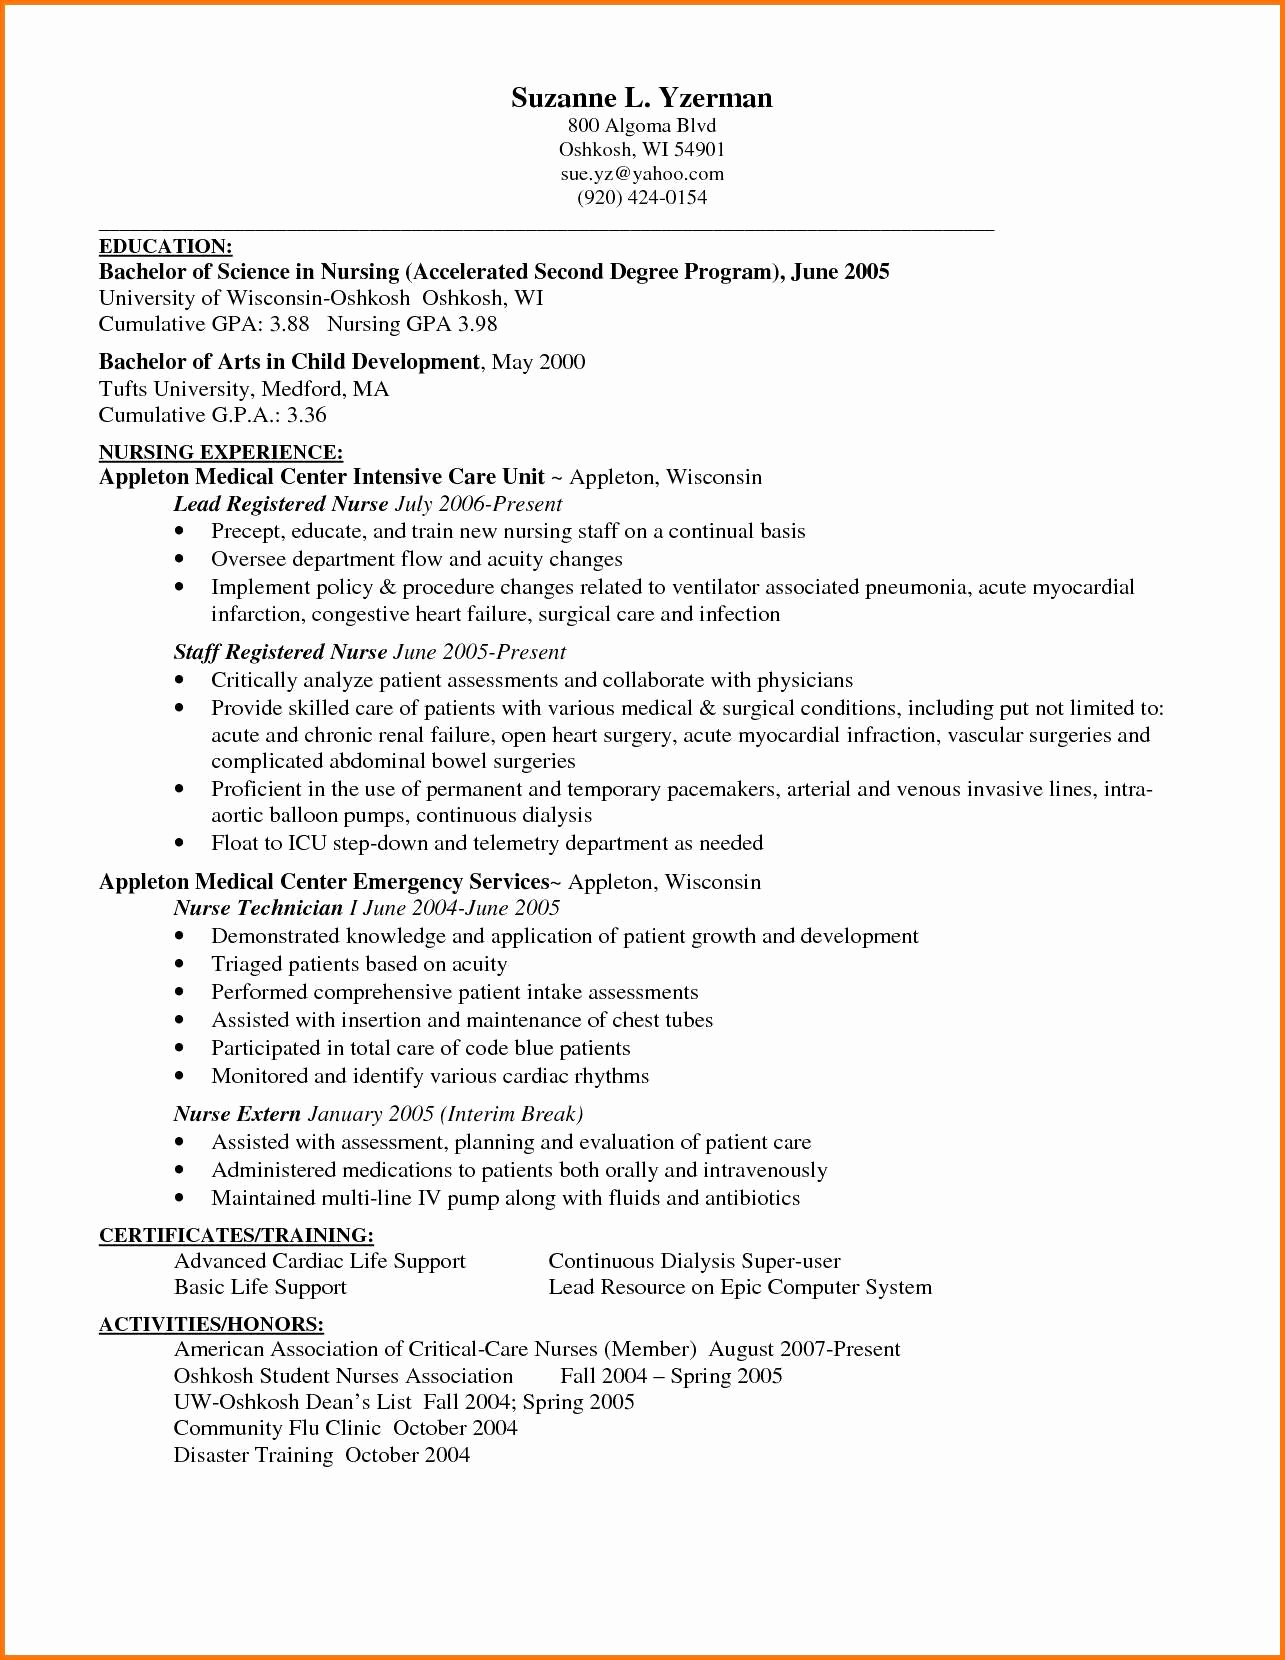 Resume for Dialysis Technician - Patient Care Technician Resume Patient Care Technician Resume New 53